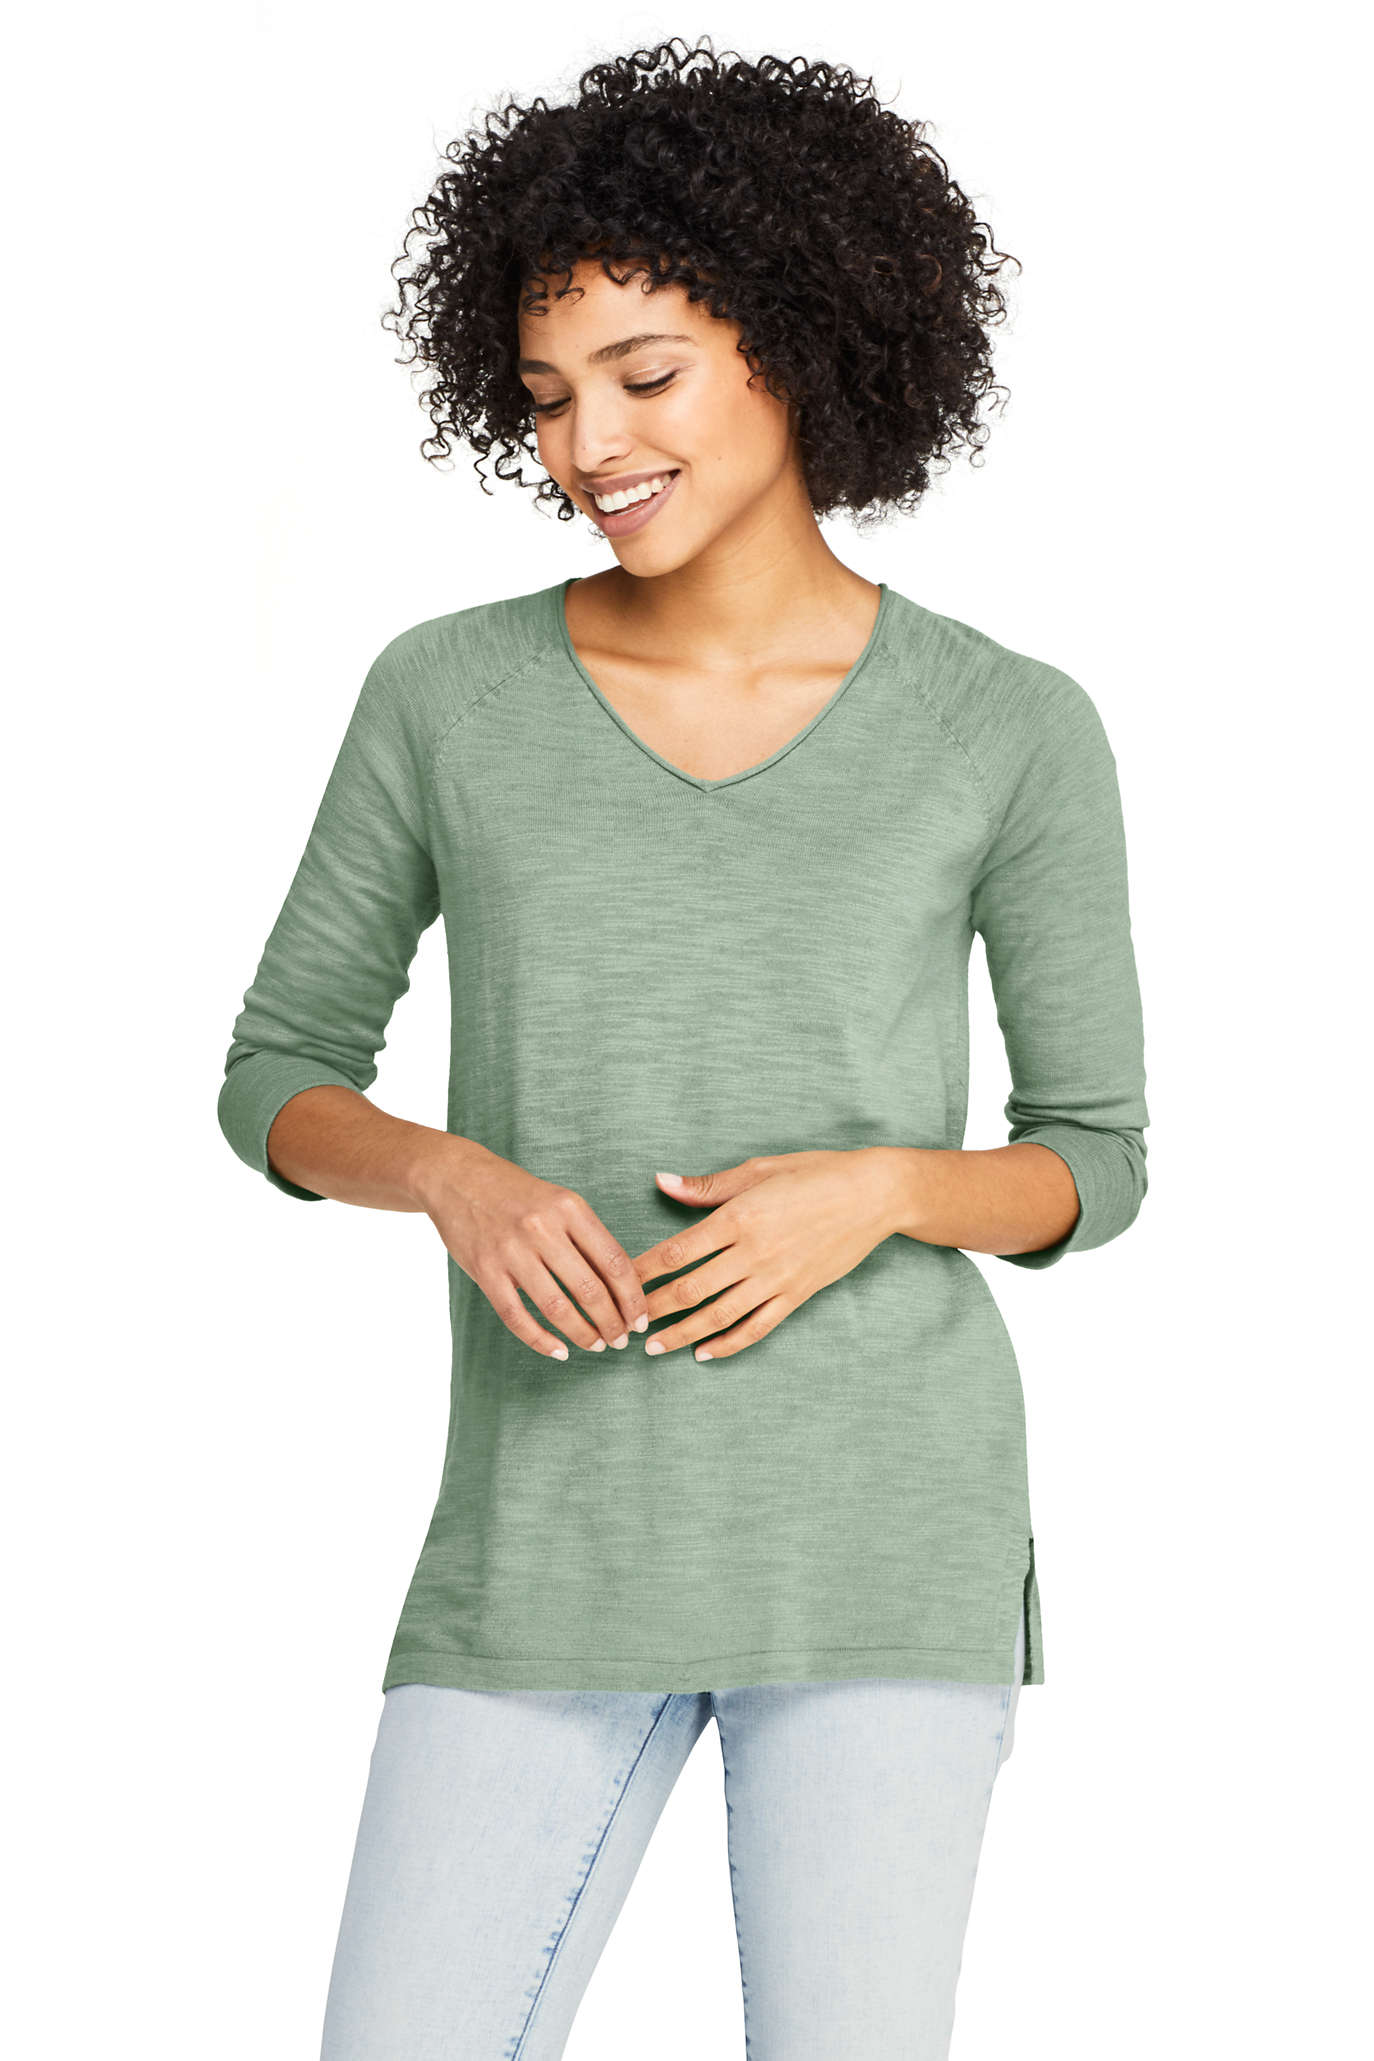 Women's Cotton Drifter V-neck Sweater - Stripe